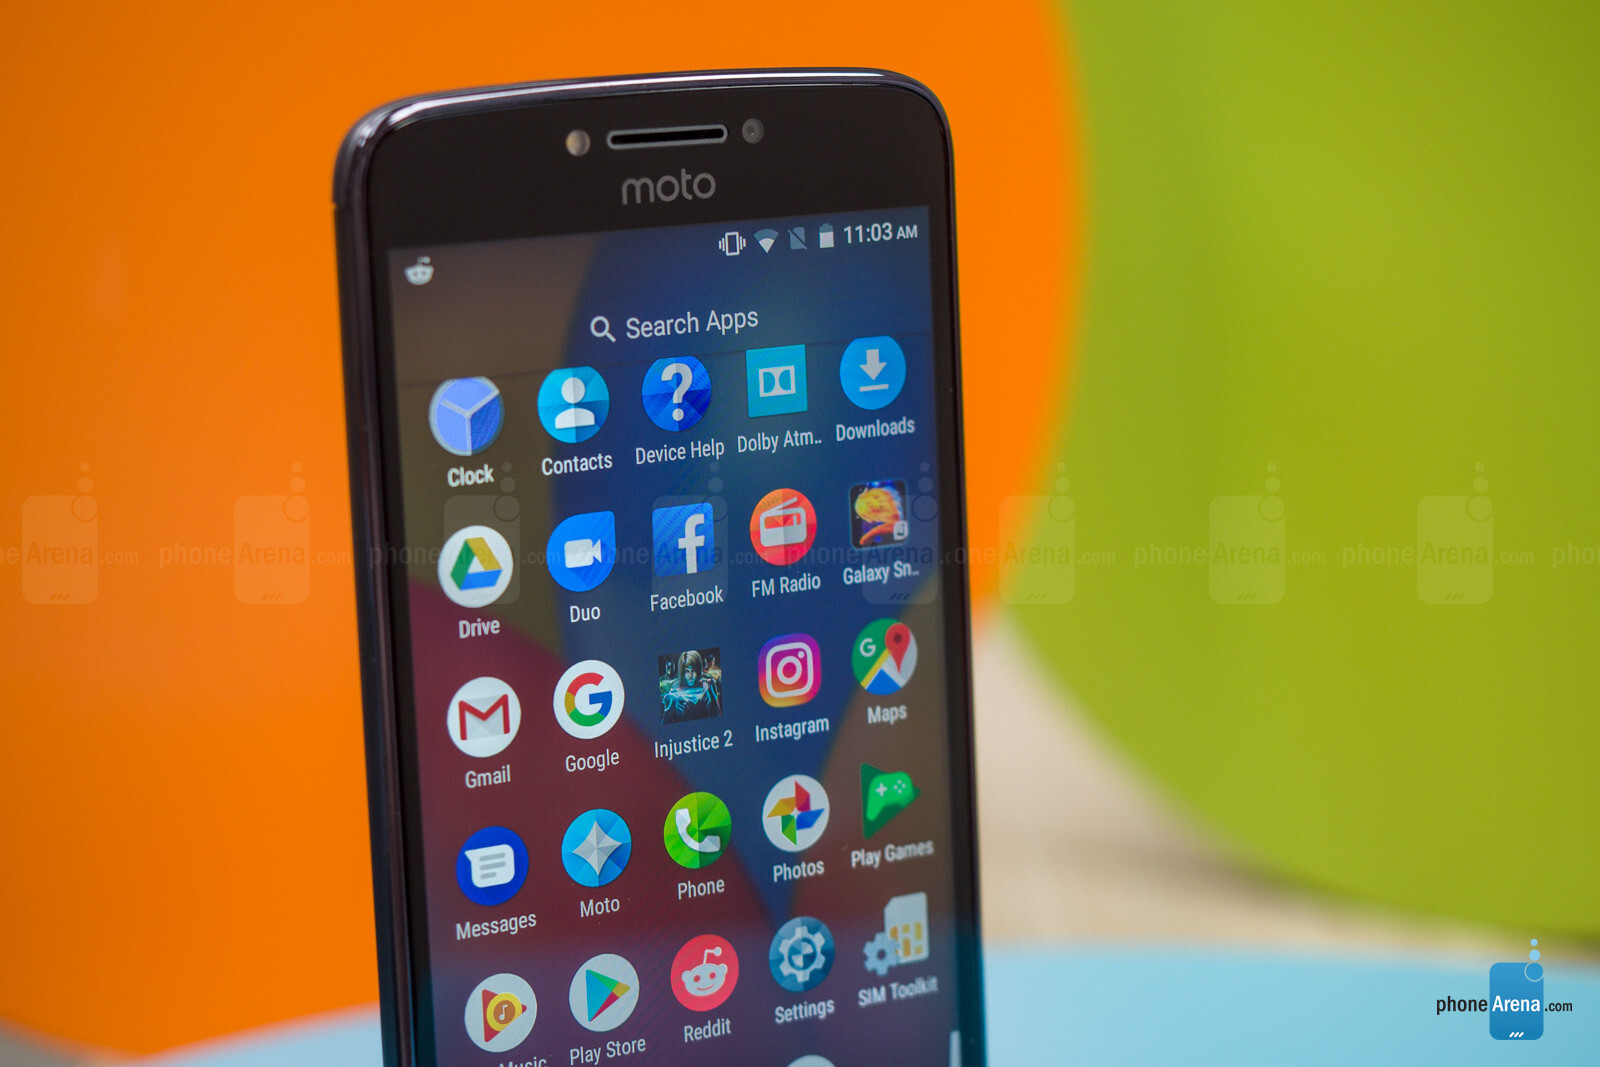 Motorola Moto E4 Plus Review - Interface and functionality